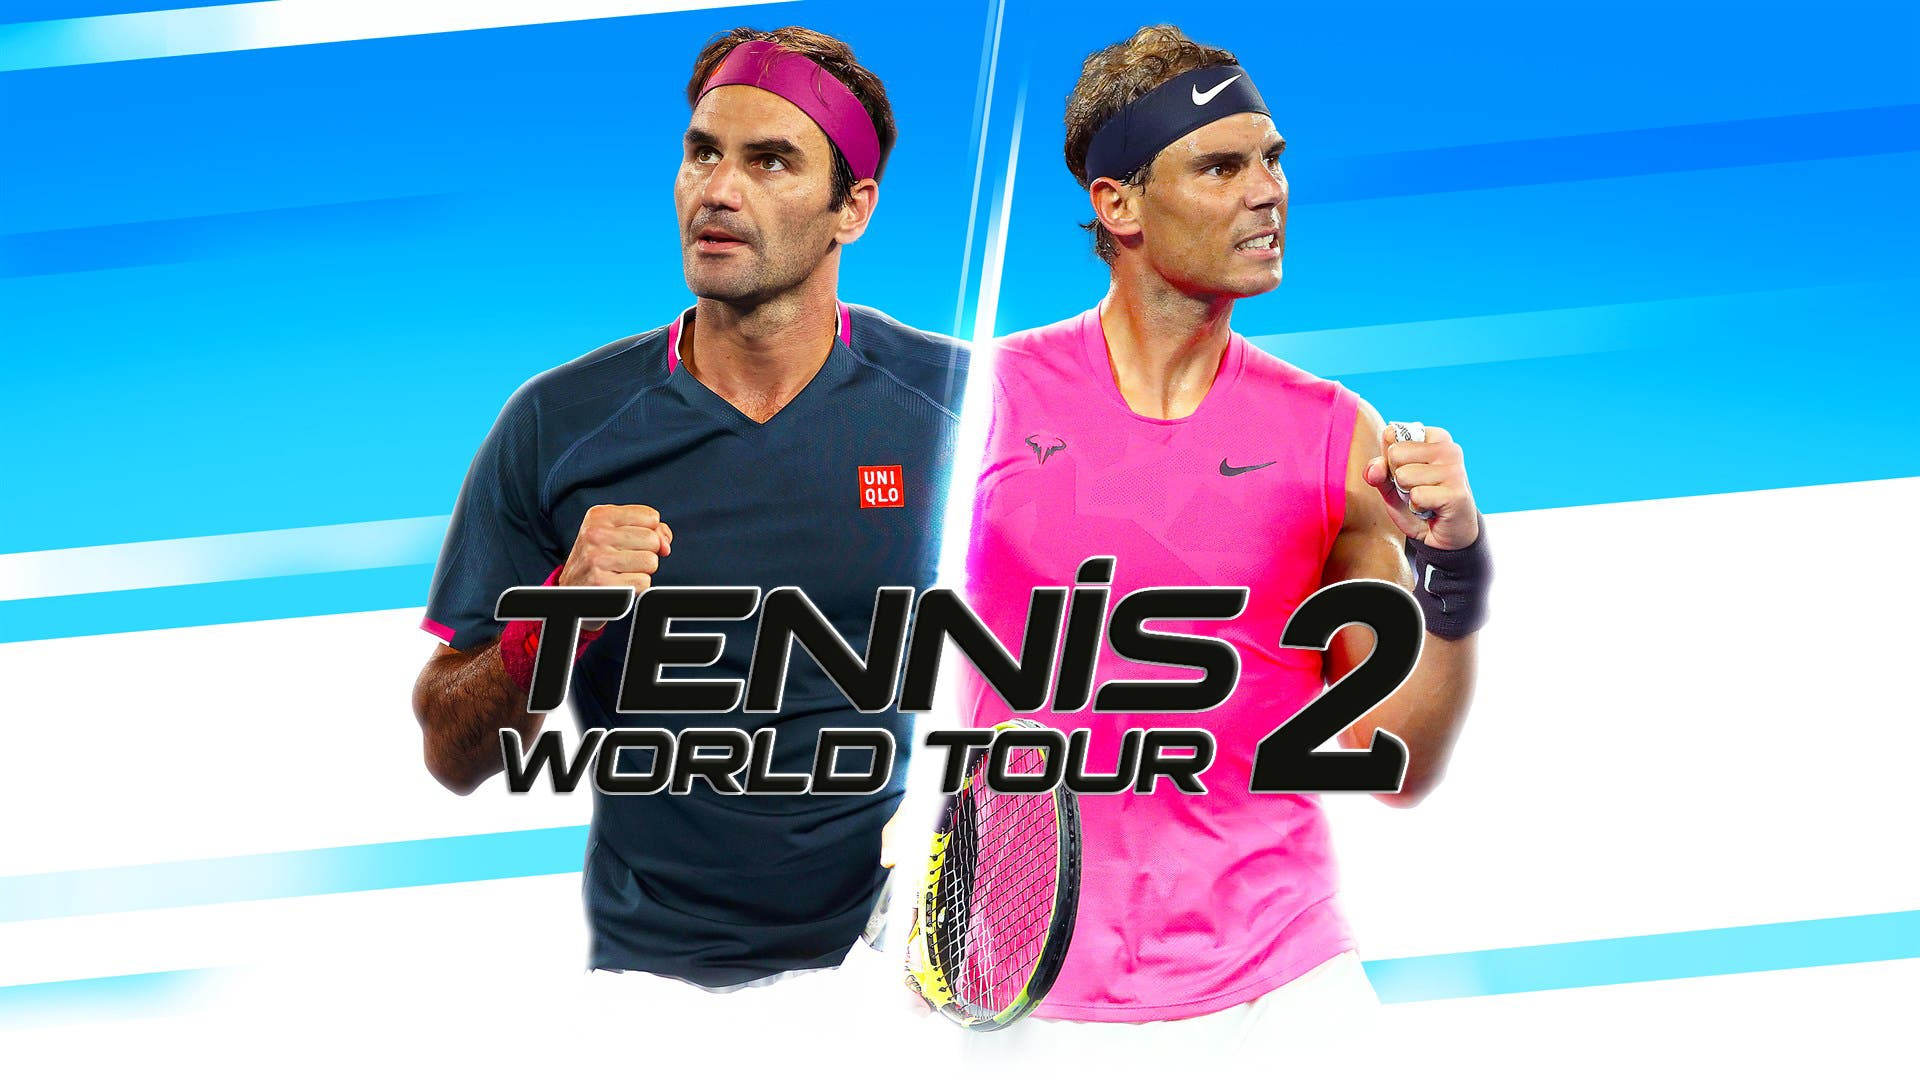 Tennis World Tour 2 - Bitwares